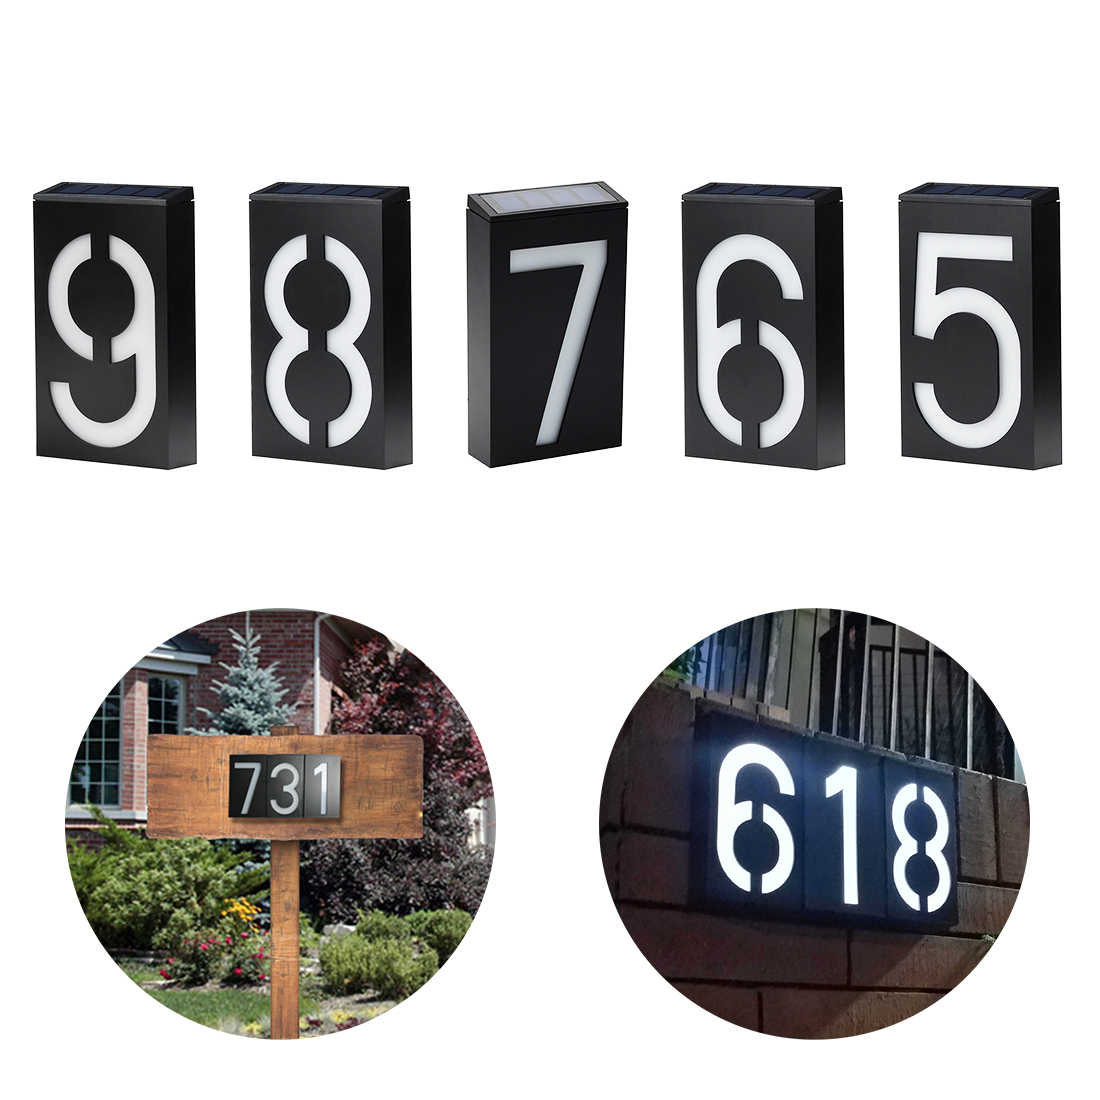 New Solar Power Number LED Light Sign House Hotel Door Address Plaque Mailbox Digit Plate Solar Wall Door Lamp